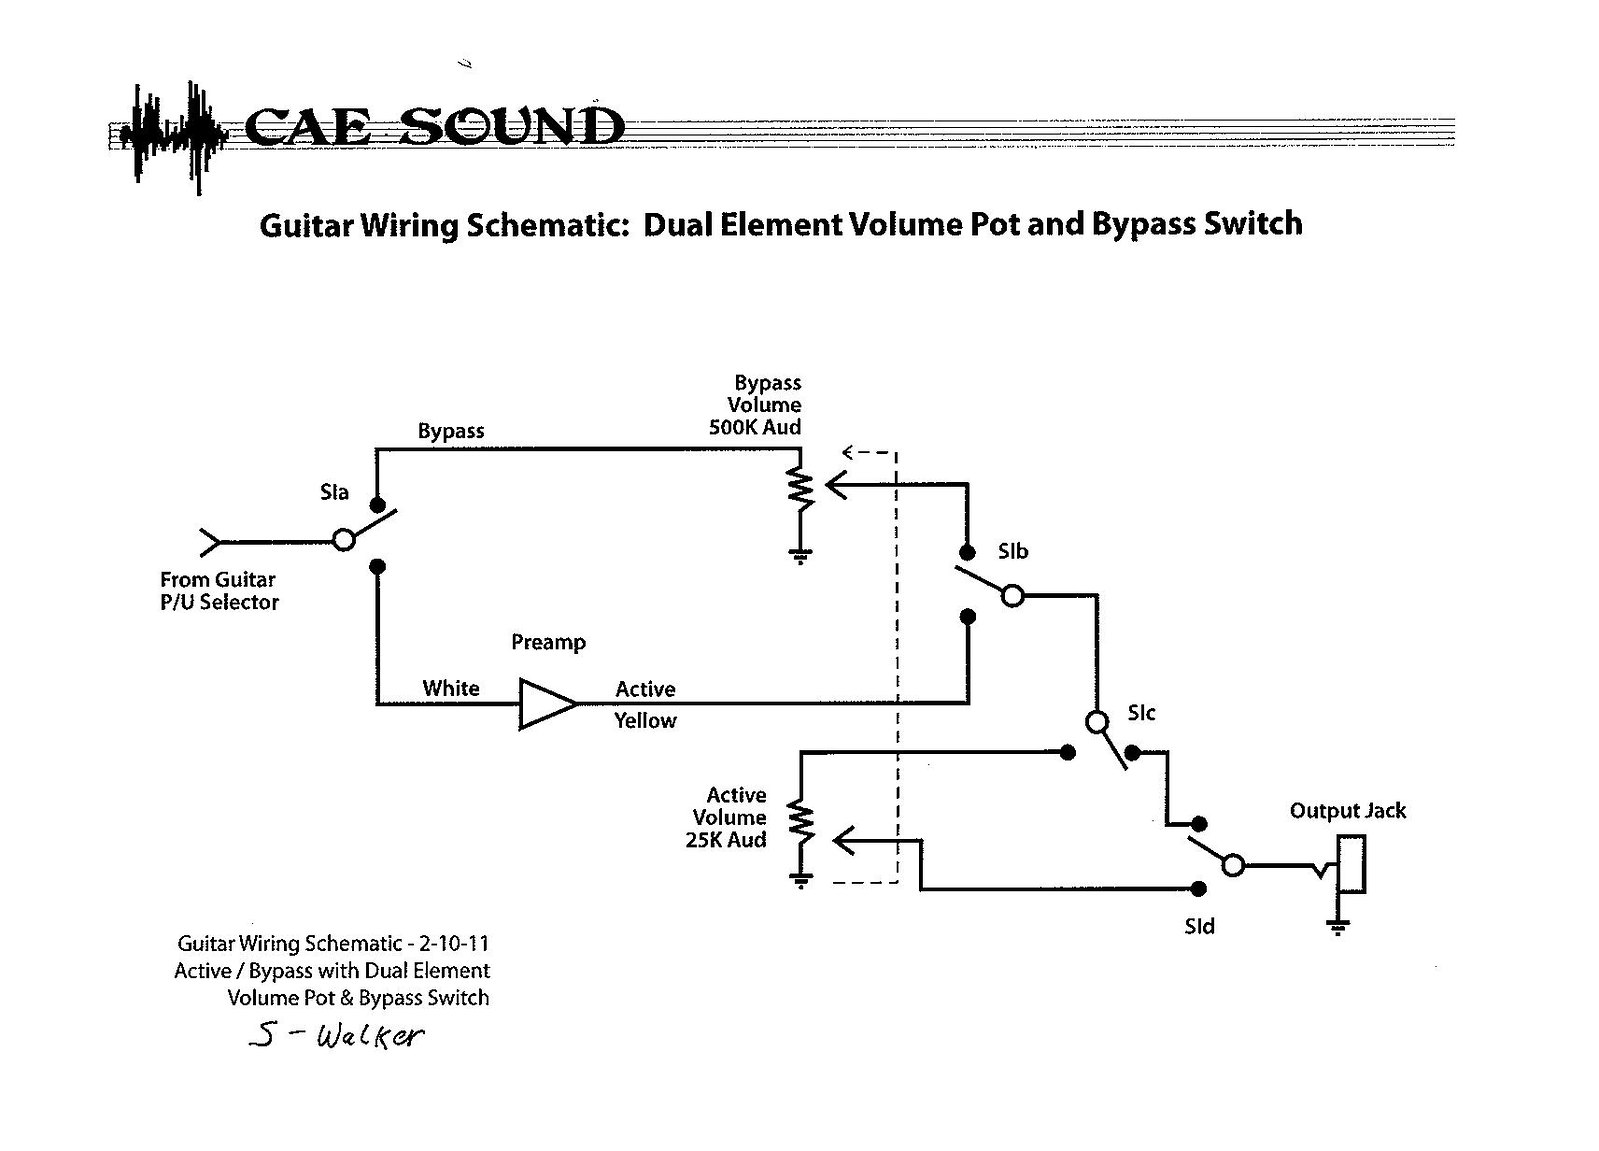 yamaha guitar wiring diagram best wiring library Yamaha DT 175 Wiring-Diagram guitar wiring schematics trusted wiring diagram yamaha guitar wiring schematic guitar wiring schematics